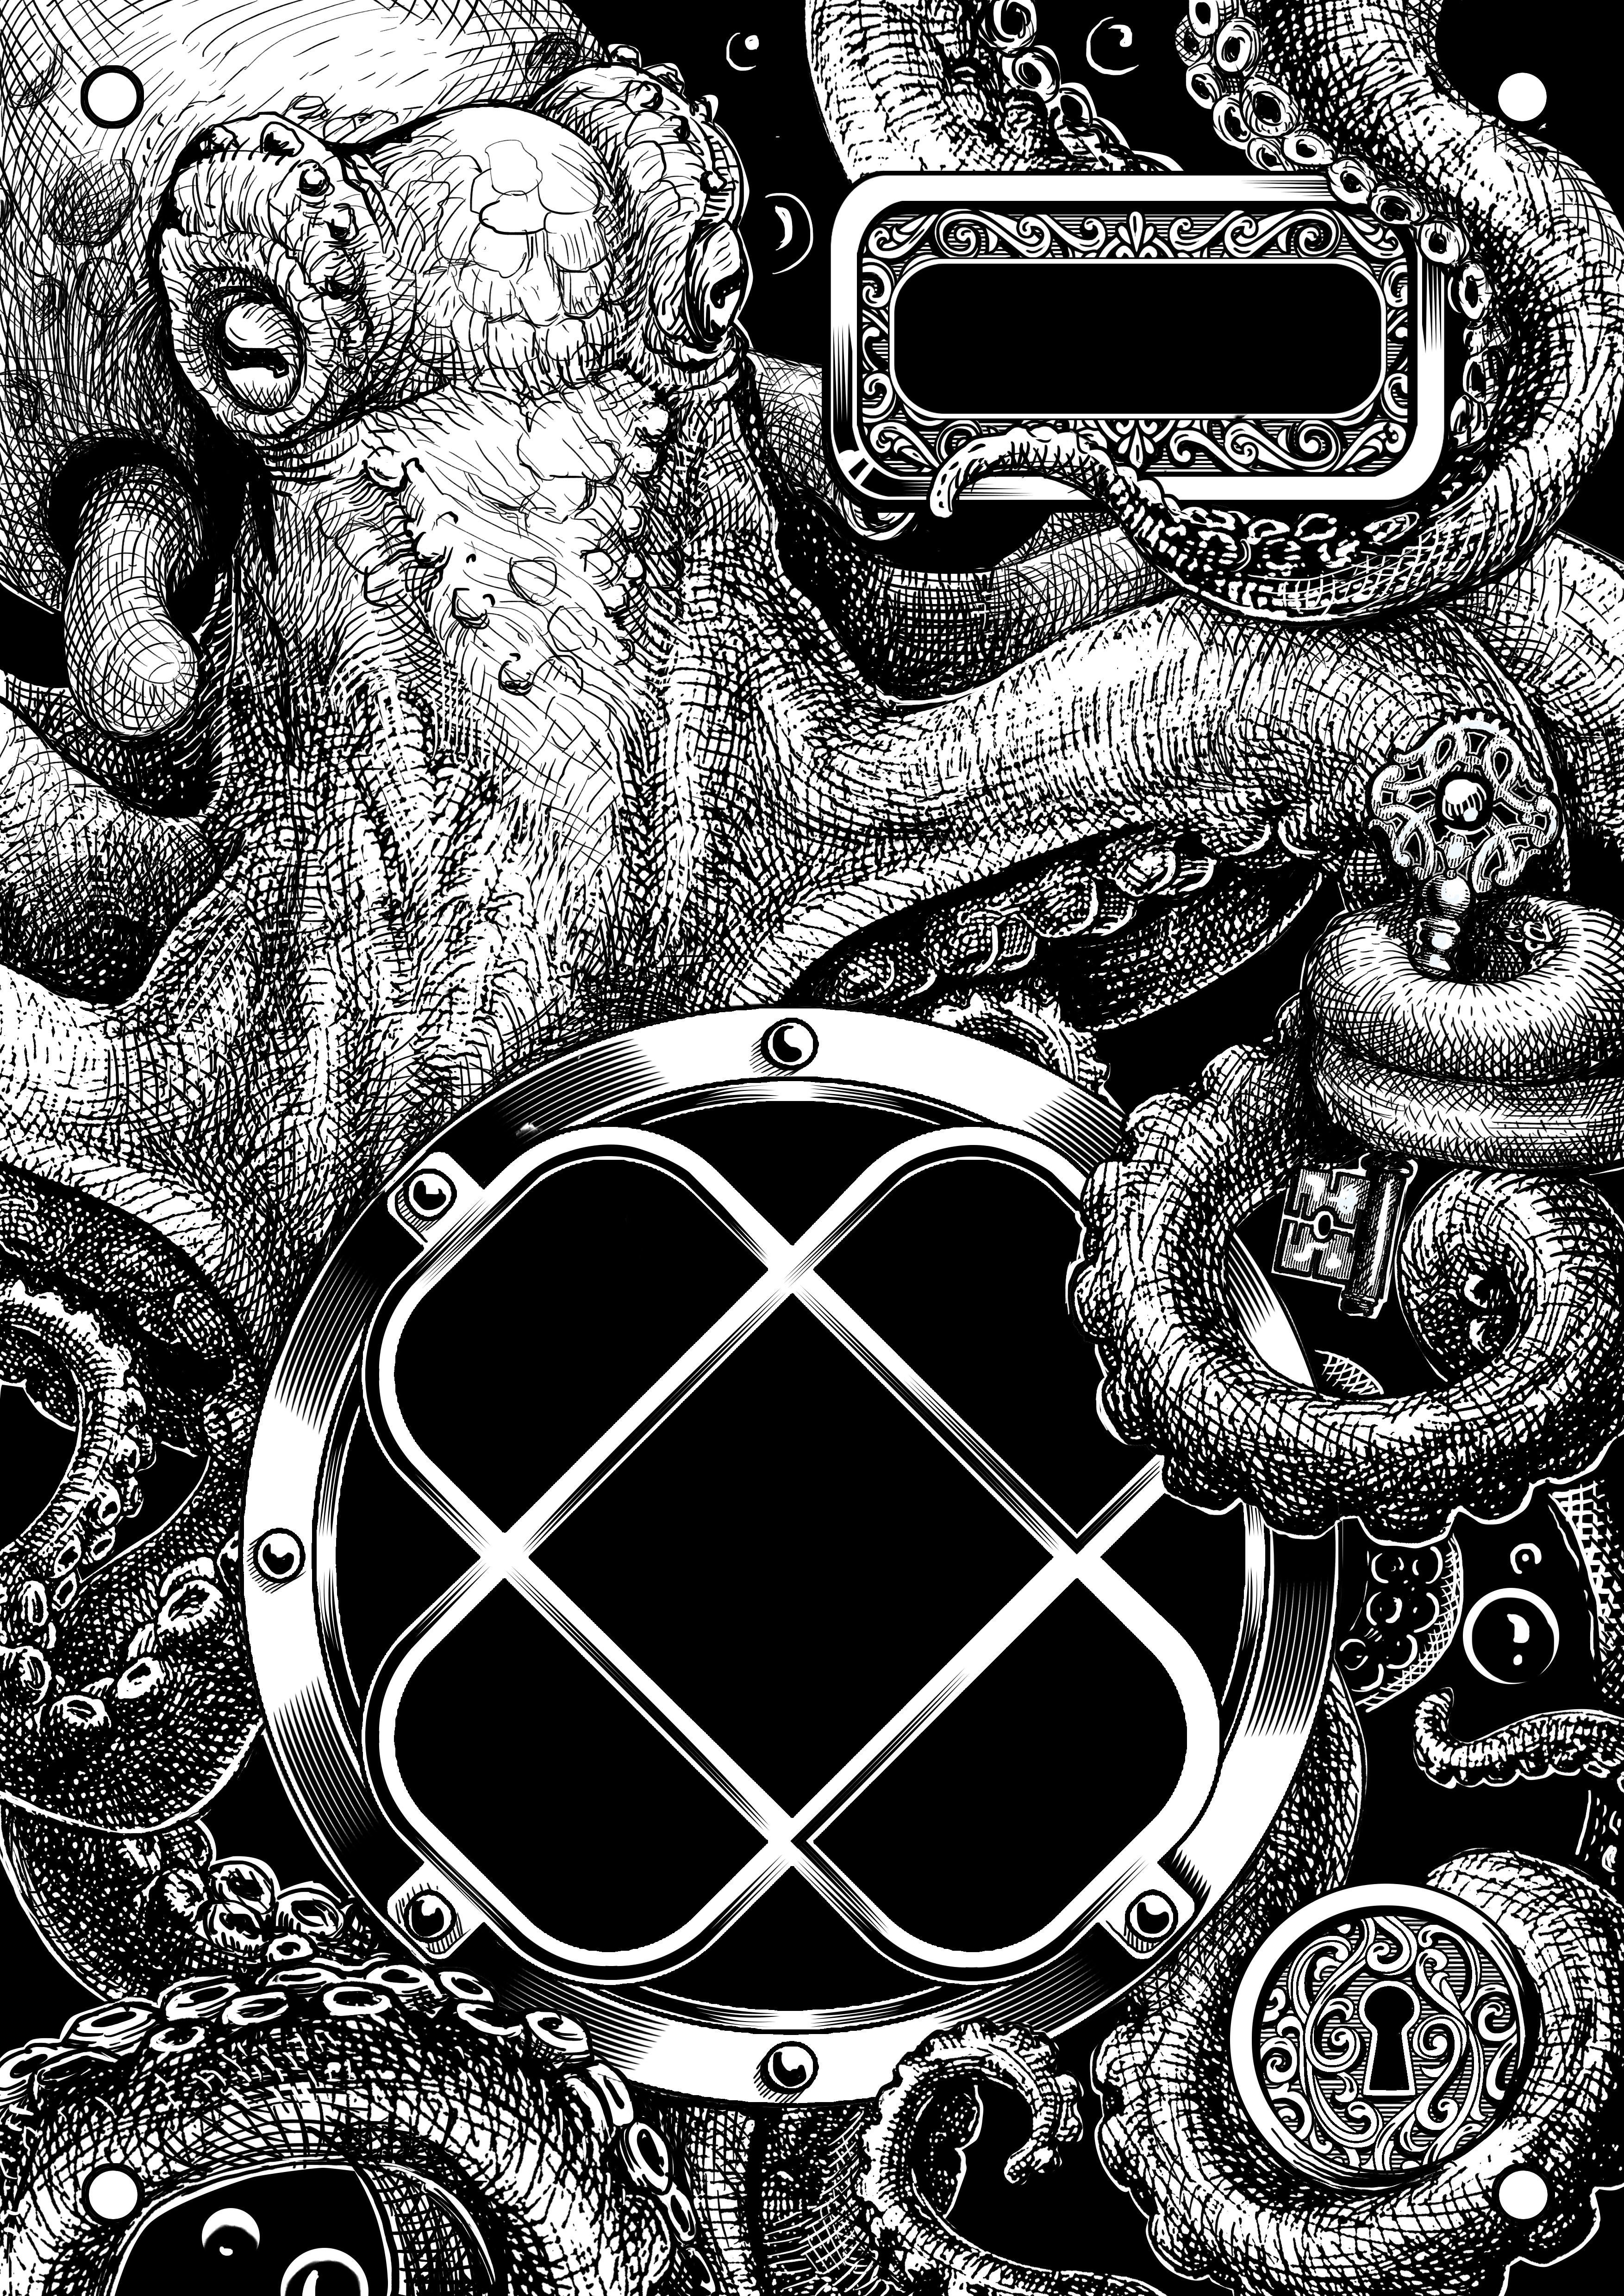 Draw an intriguing steampunk journal cover featuring an octopus and diver's faceplate